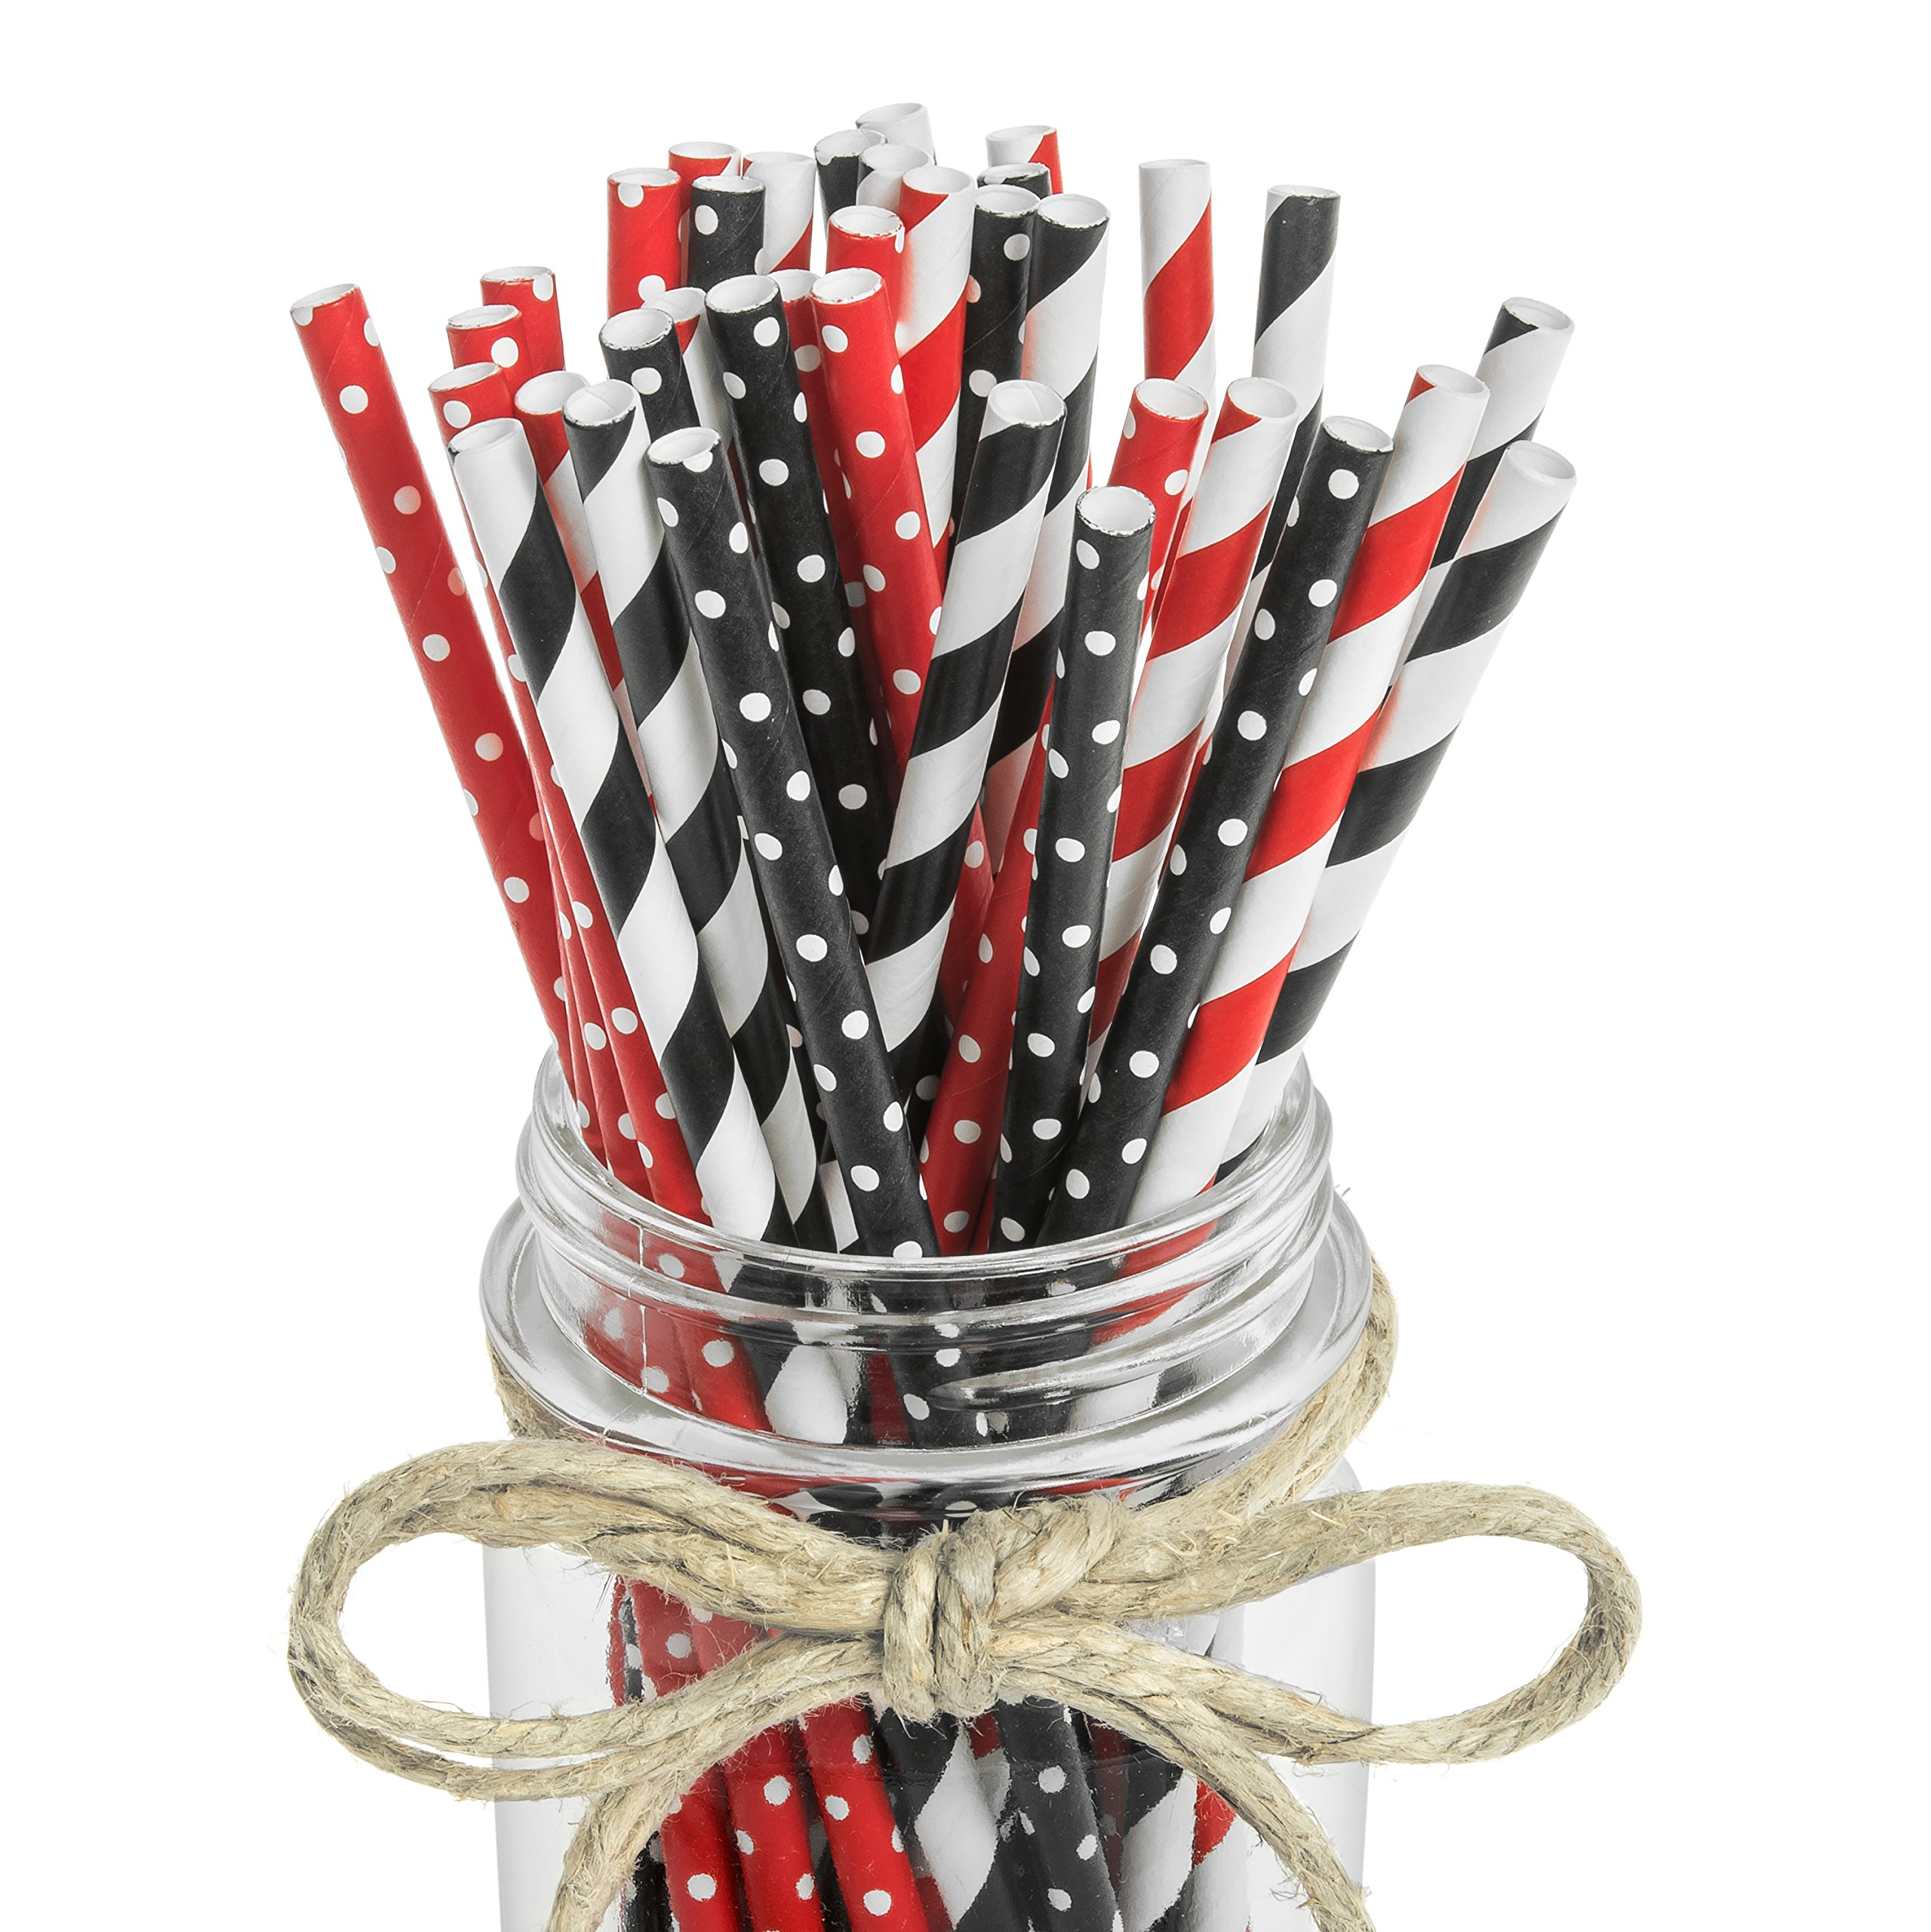 100 Piece - Black, White and Red Paper Drinking Straws - Stripes and Polka Dots - Party Decorations Perfect for Kids 1st Birthday Parties, Cocktails, Ladybug Party Supplies - Haute Soiree